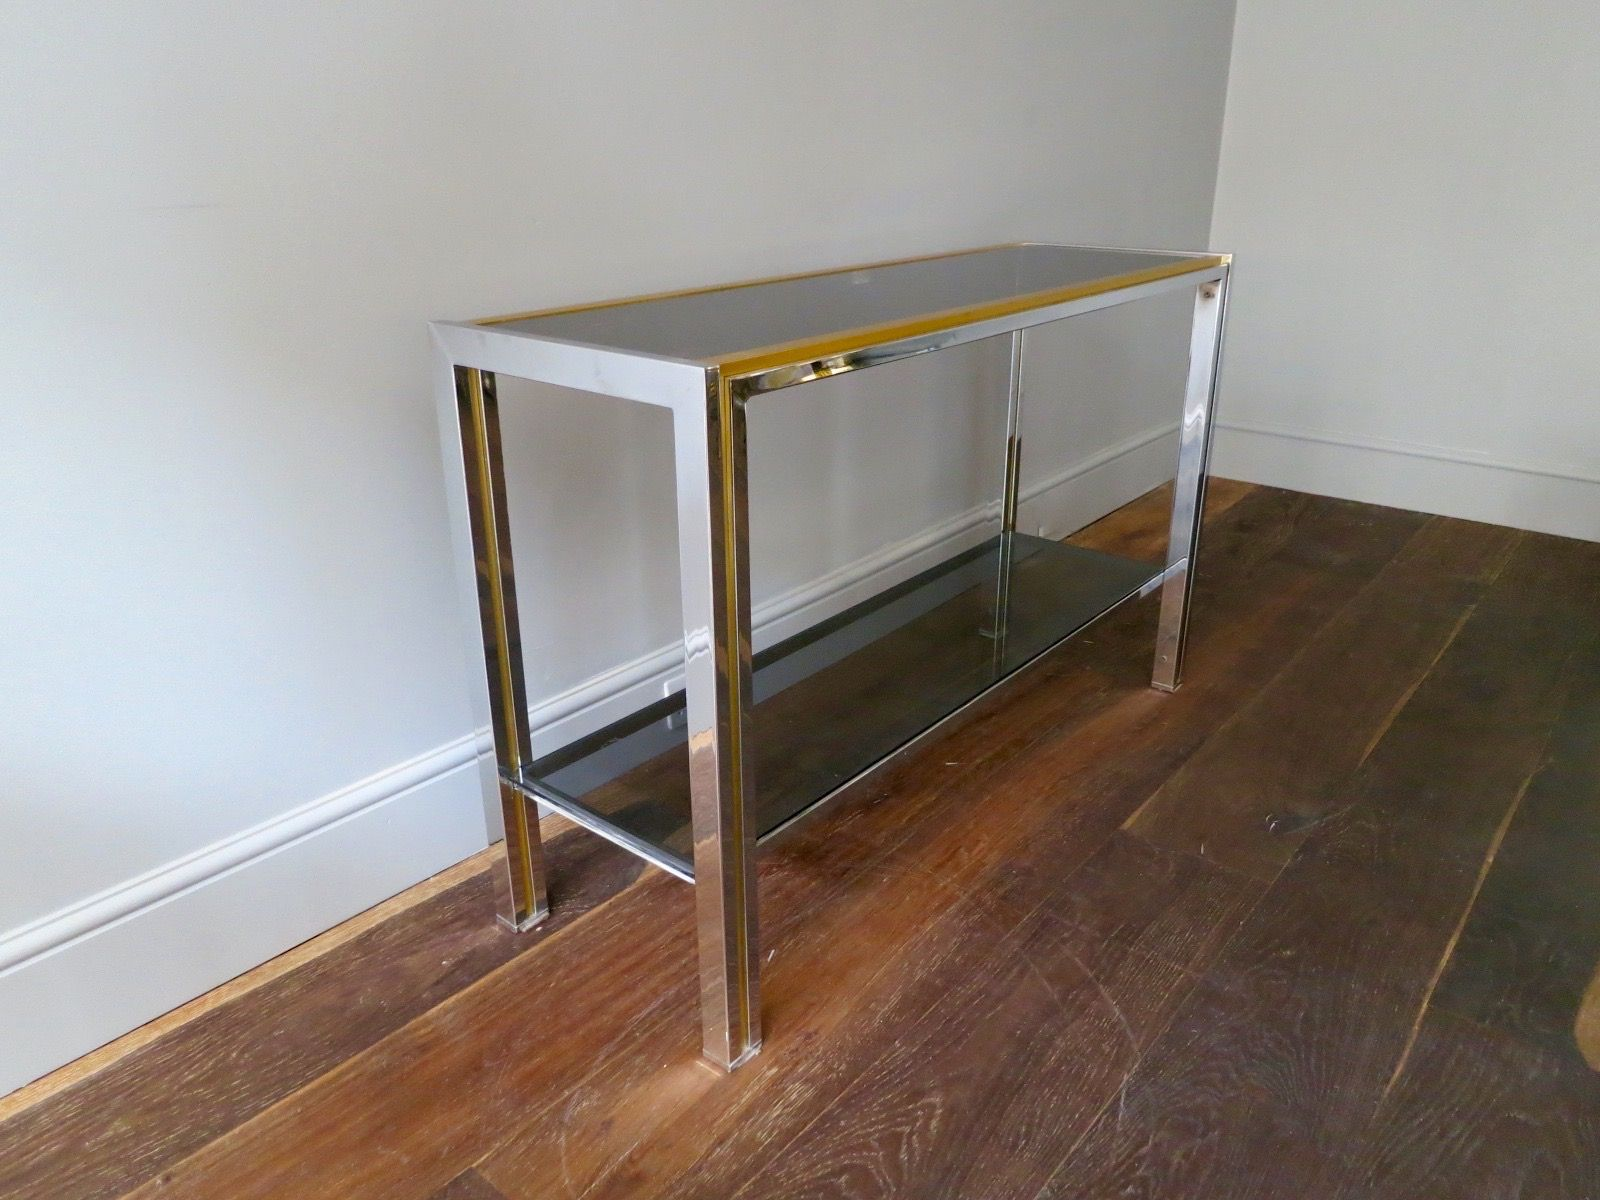 french brass and chrome console table s for sale at pamono - french brass and chrome console table s